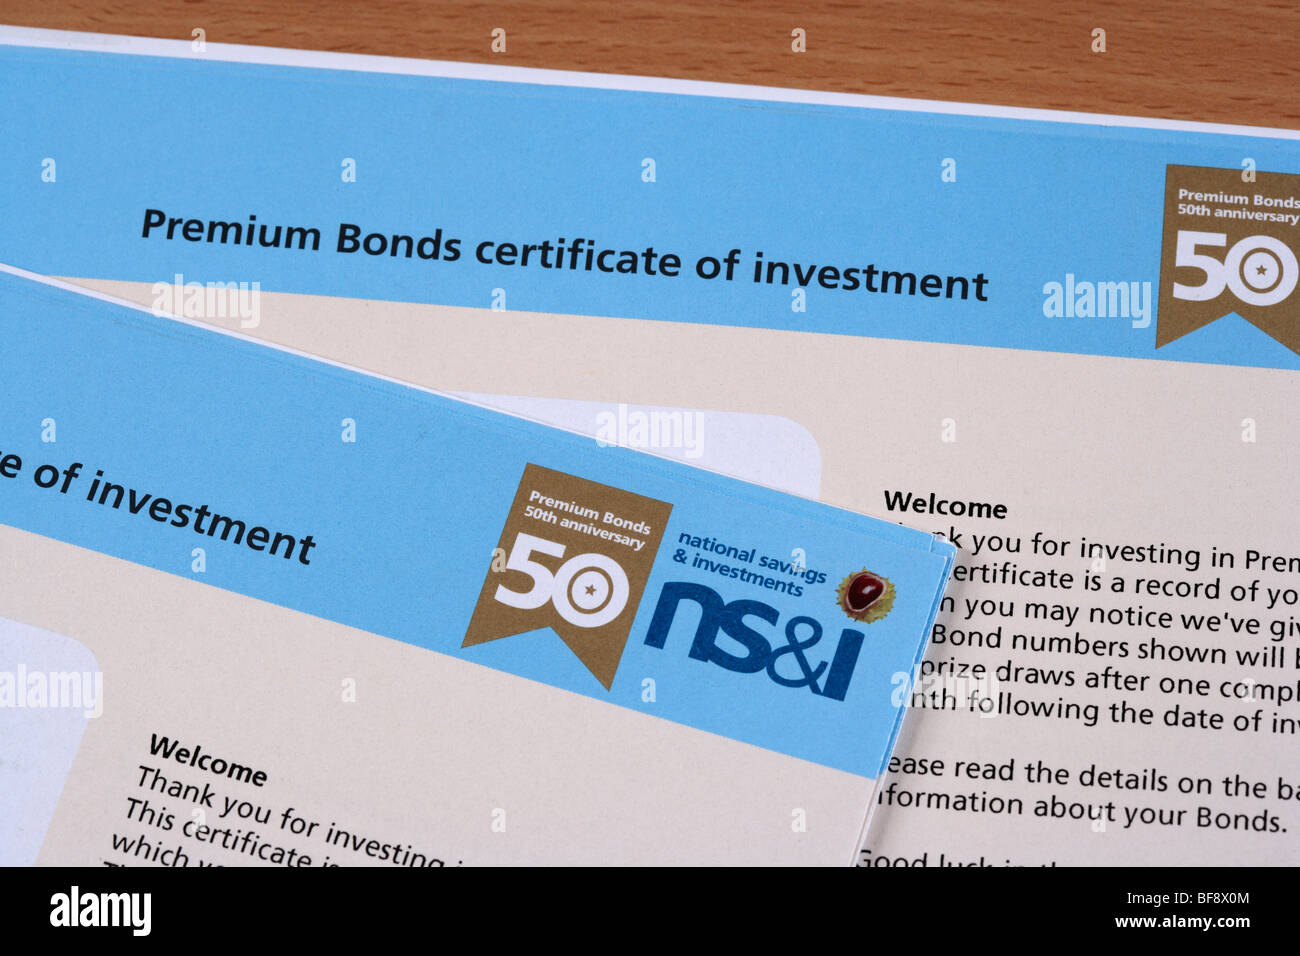 Premium Bond Certificates - Stock Image